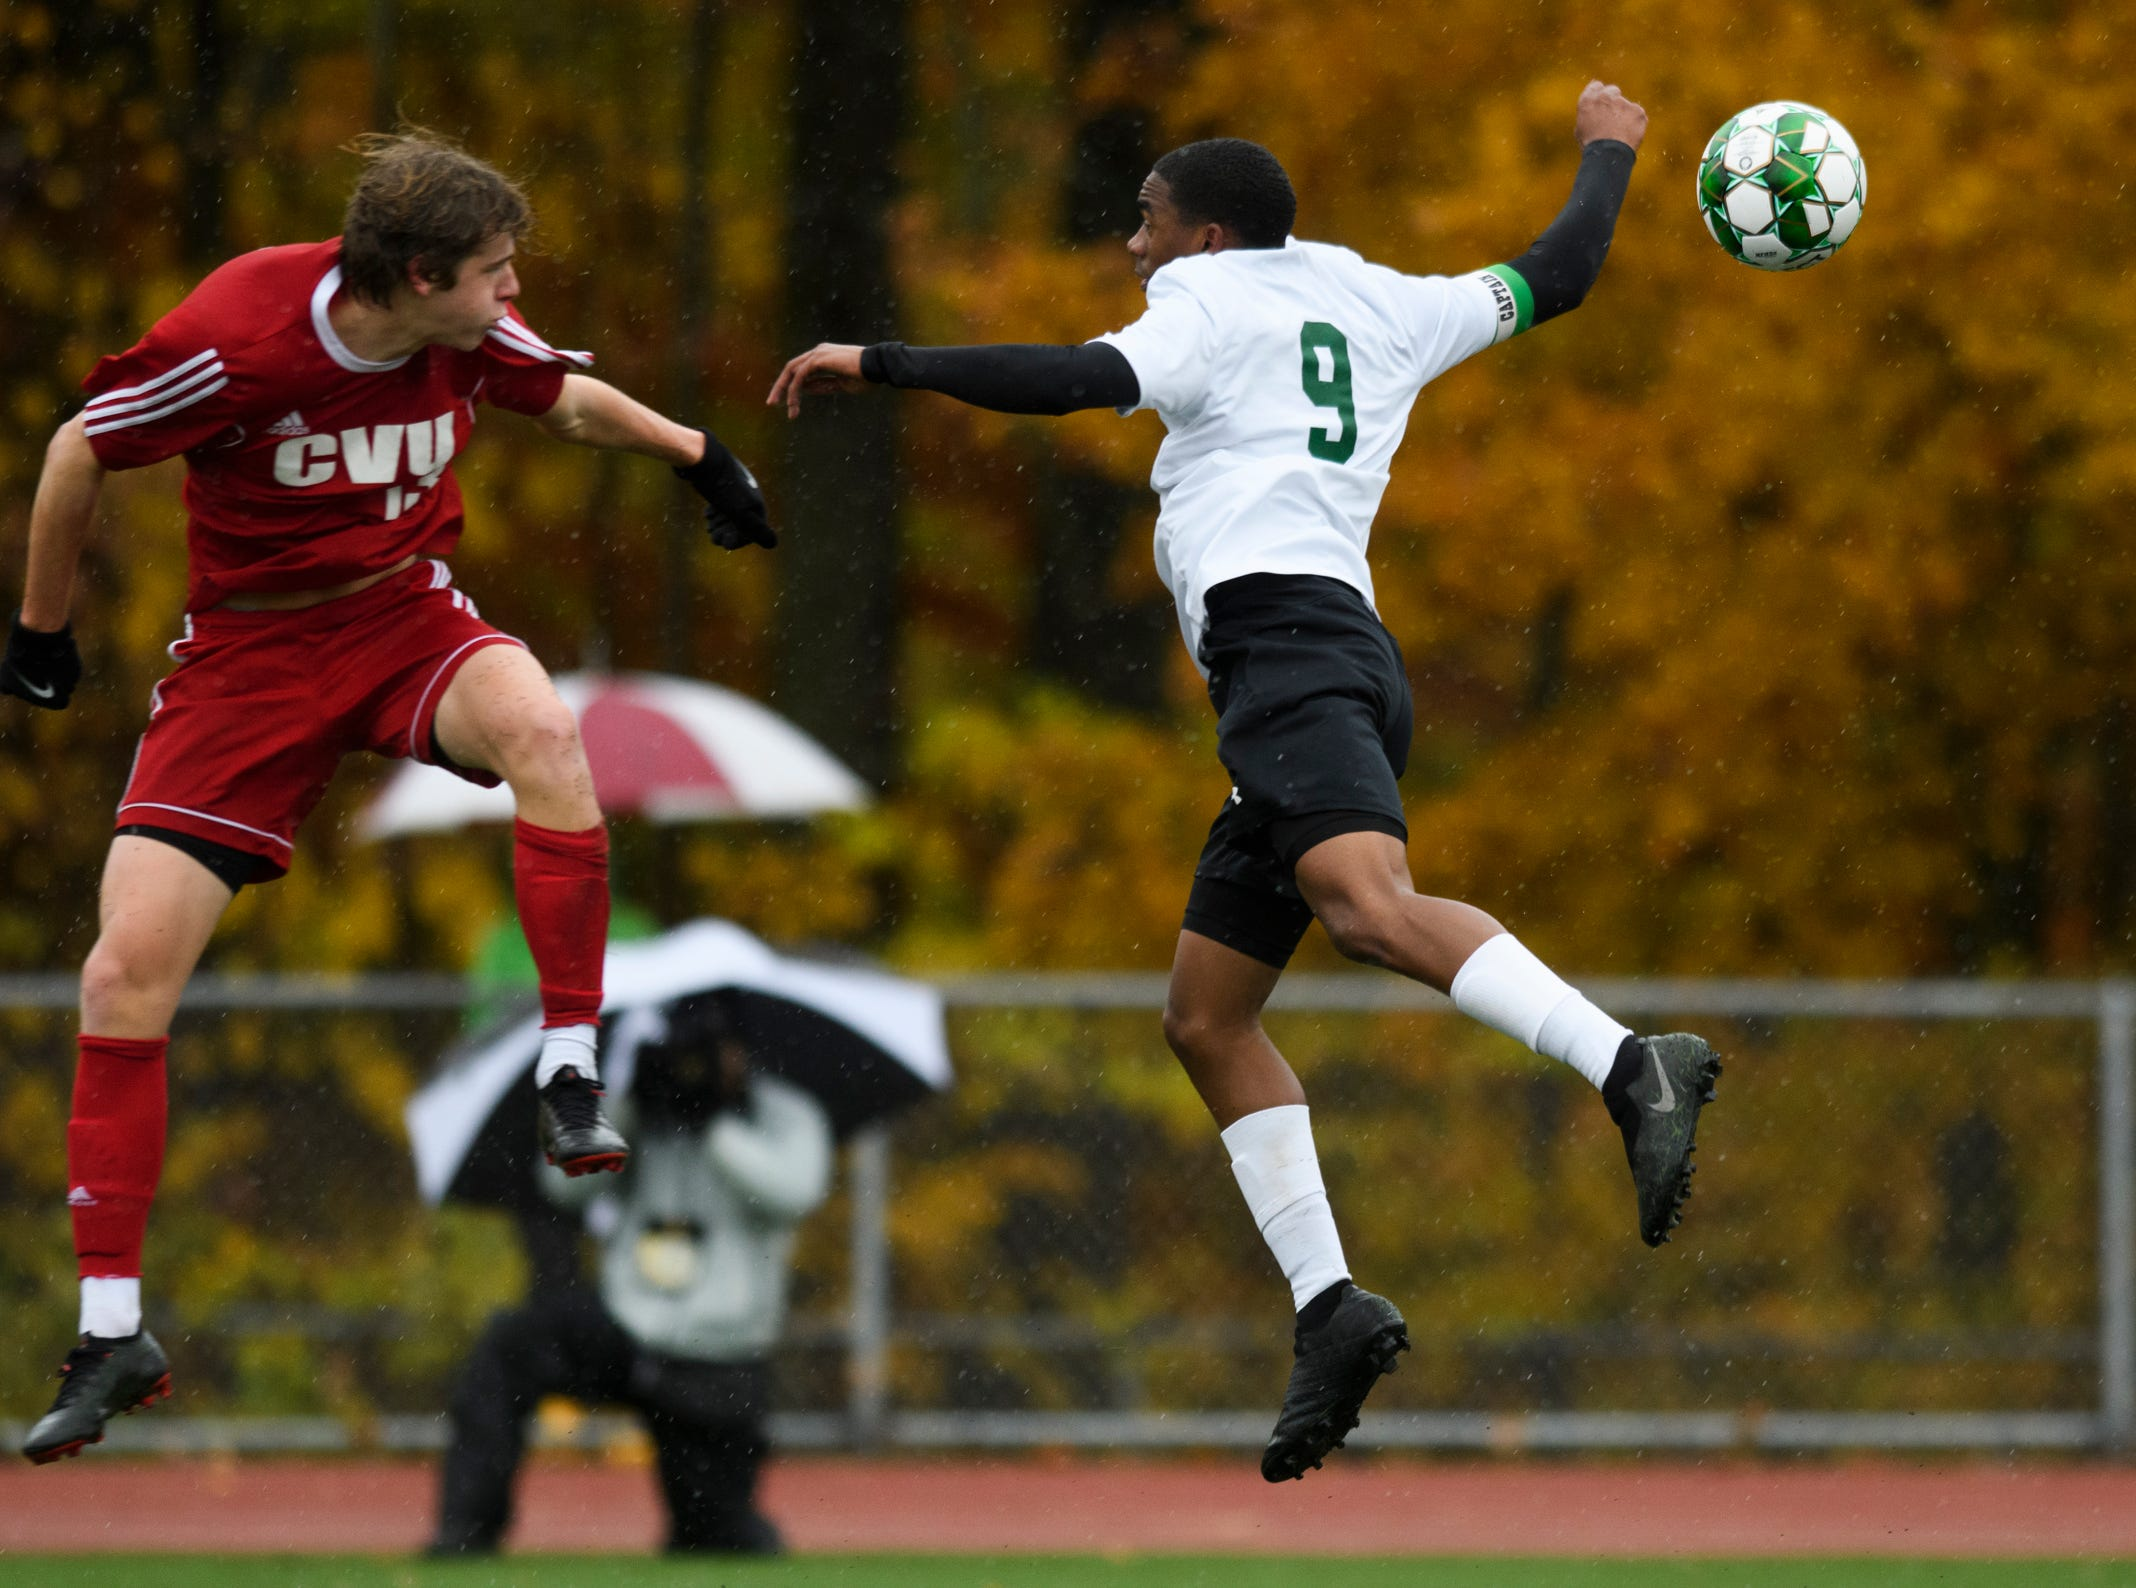 CVU's Erik Stolen (13) and St. Johnsbury's Malik Joell (9) battle to head the ball during the Division I boys soccer championship game between the St. Johnsbury Hilltoppers and the Champlain Valley Union Redhawks at Buck Hard Field on Saturday morning November 3, 2018 in Burlington.